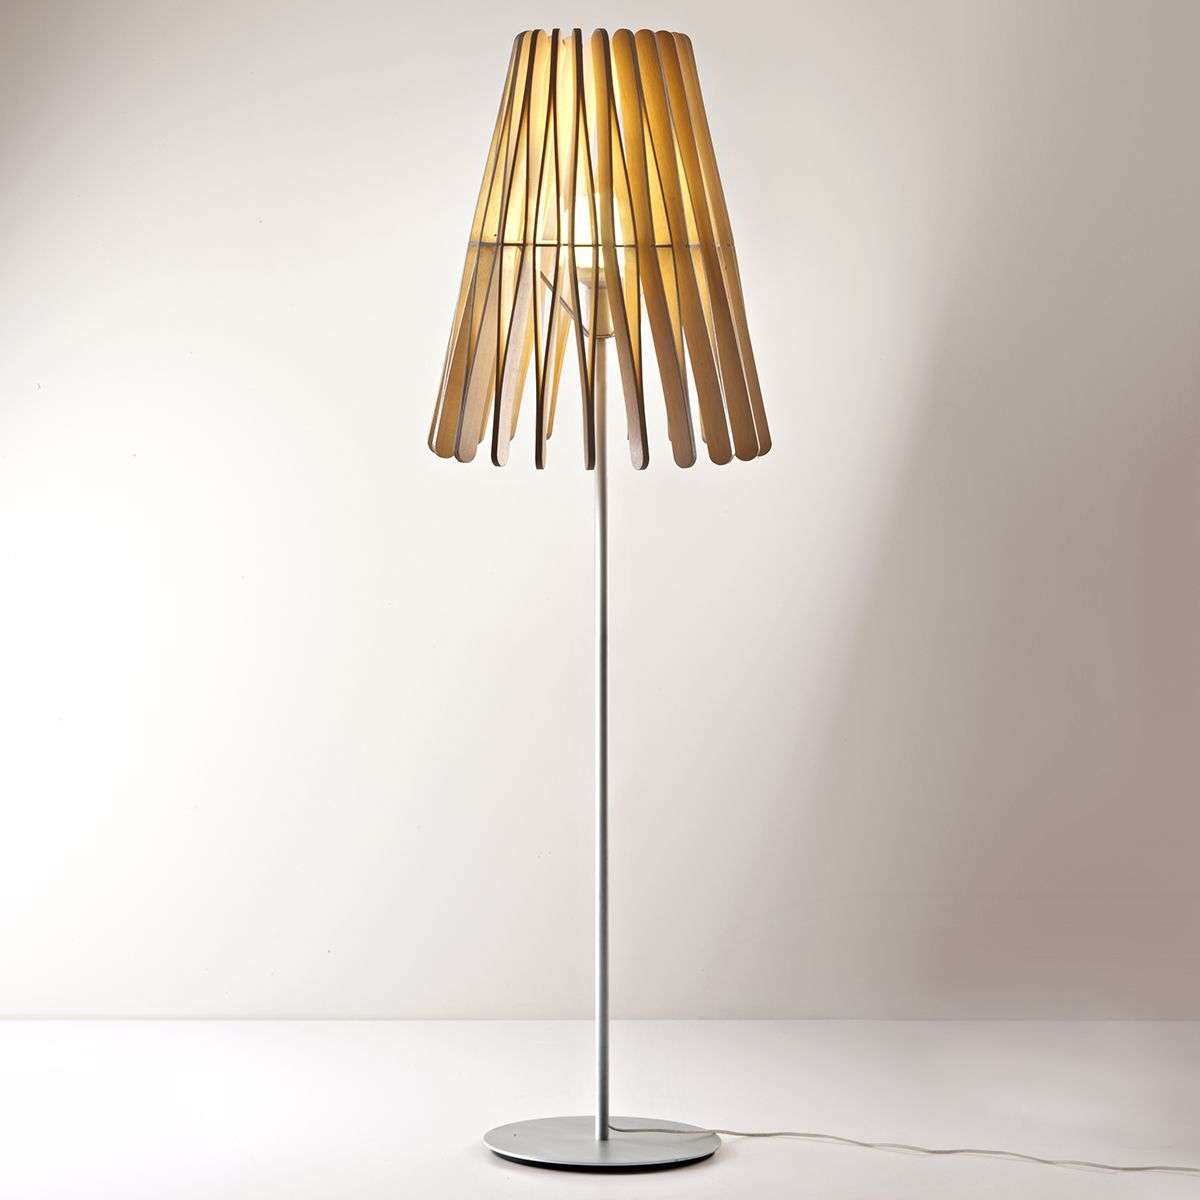 Cone Shaped Stick Floor Lamp Made Of Wood 3503207 31